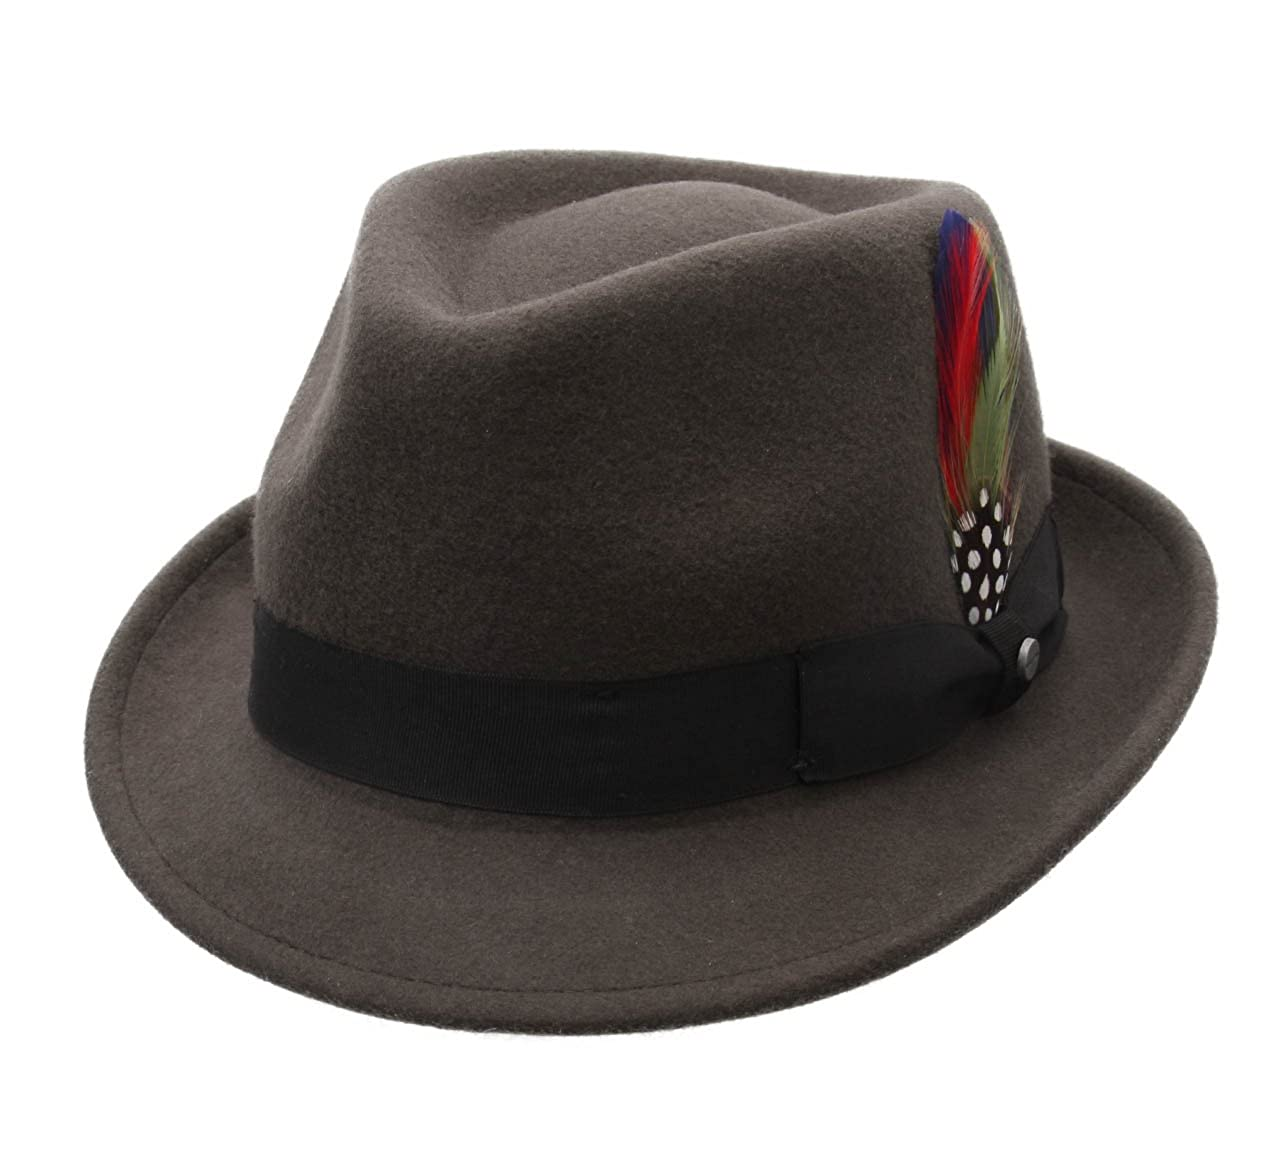 cc32653af86be Stetson Richmond Wool Felt Trilby Hat at Amazon Men s Clothing store